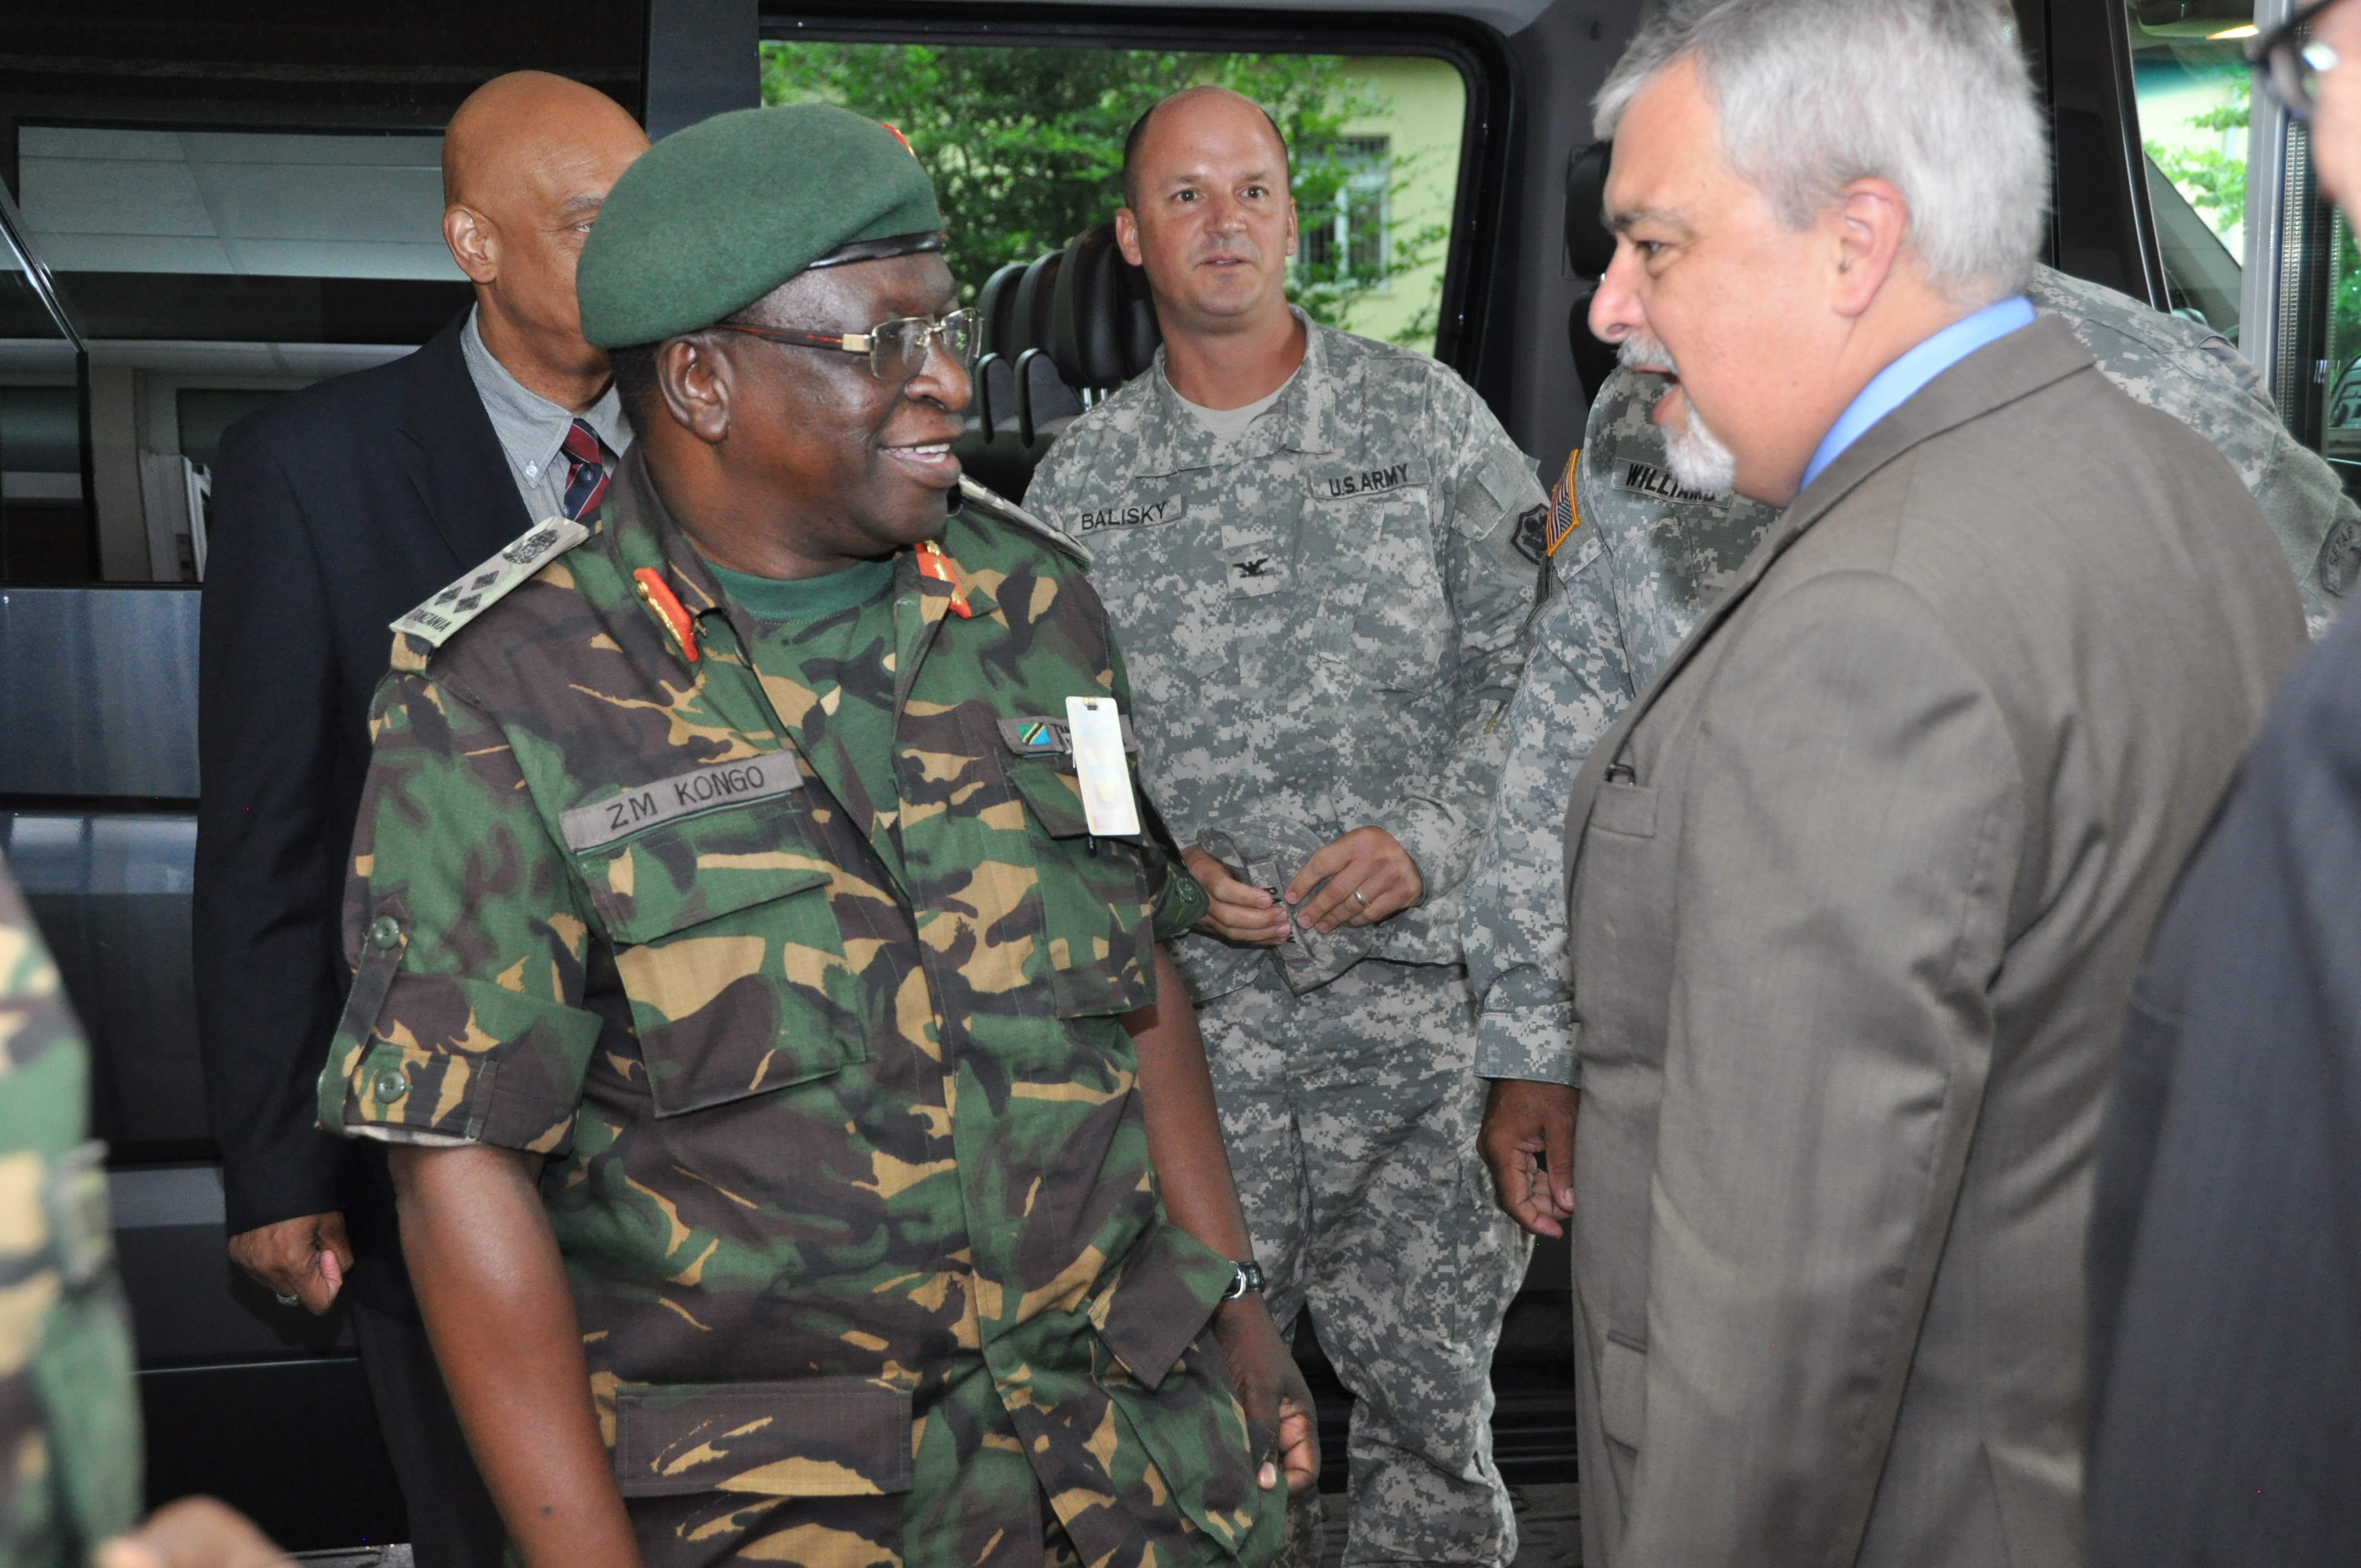 Ambassador Phillip Carter, III, U.S. Africa Command deputy to the commander for civil-military engagement, greets Brig. Gen. Gen. Zoma Mathik Kongo,  director of operations for the Tanzanian People's Defence Force during of a Command Sponsored Visit, coordinated by U.S. Army Africa July 8, 2015.